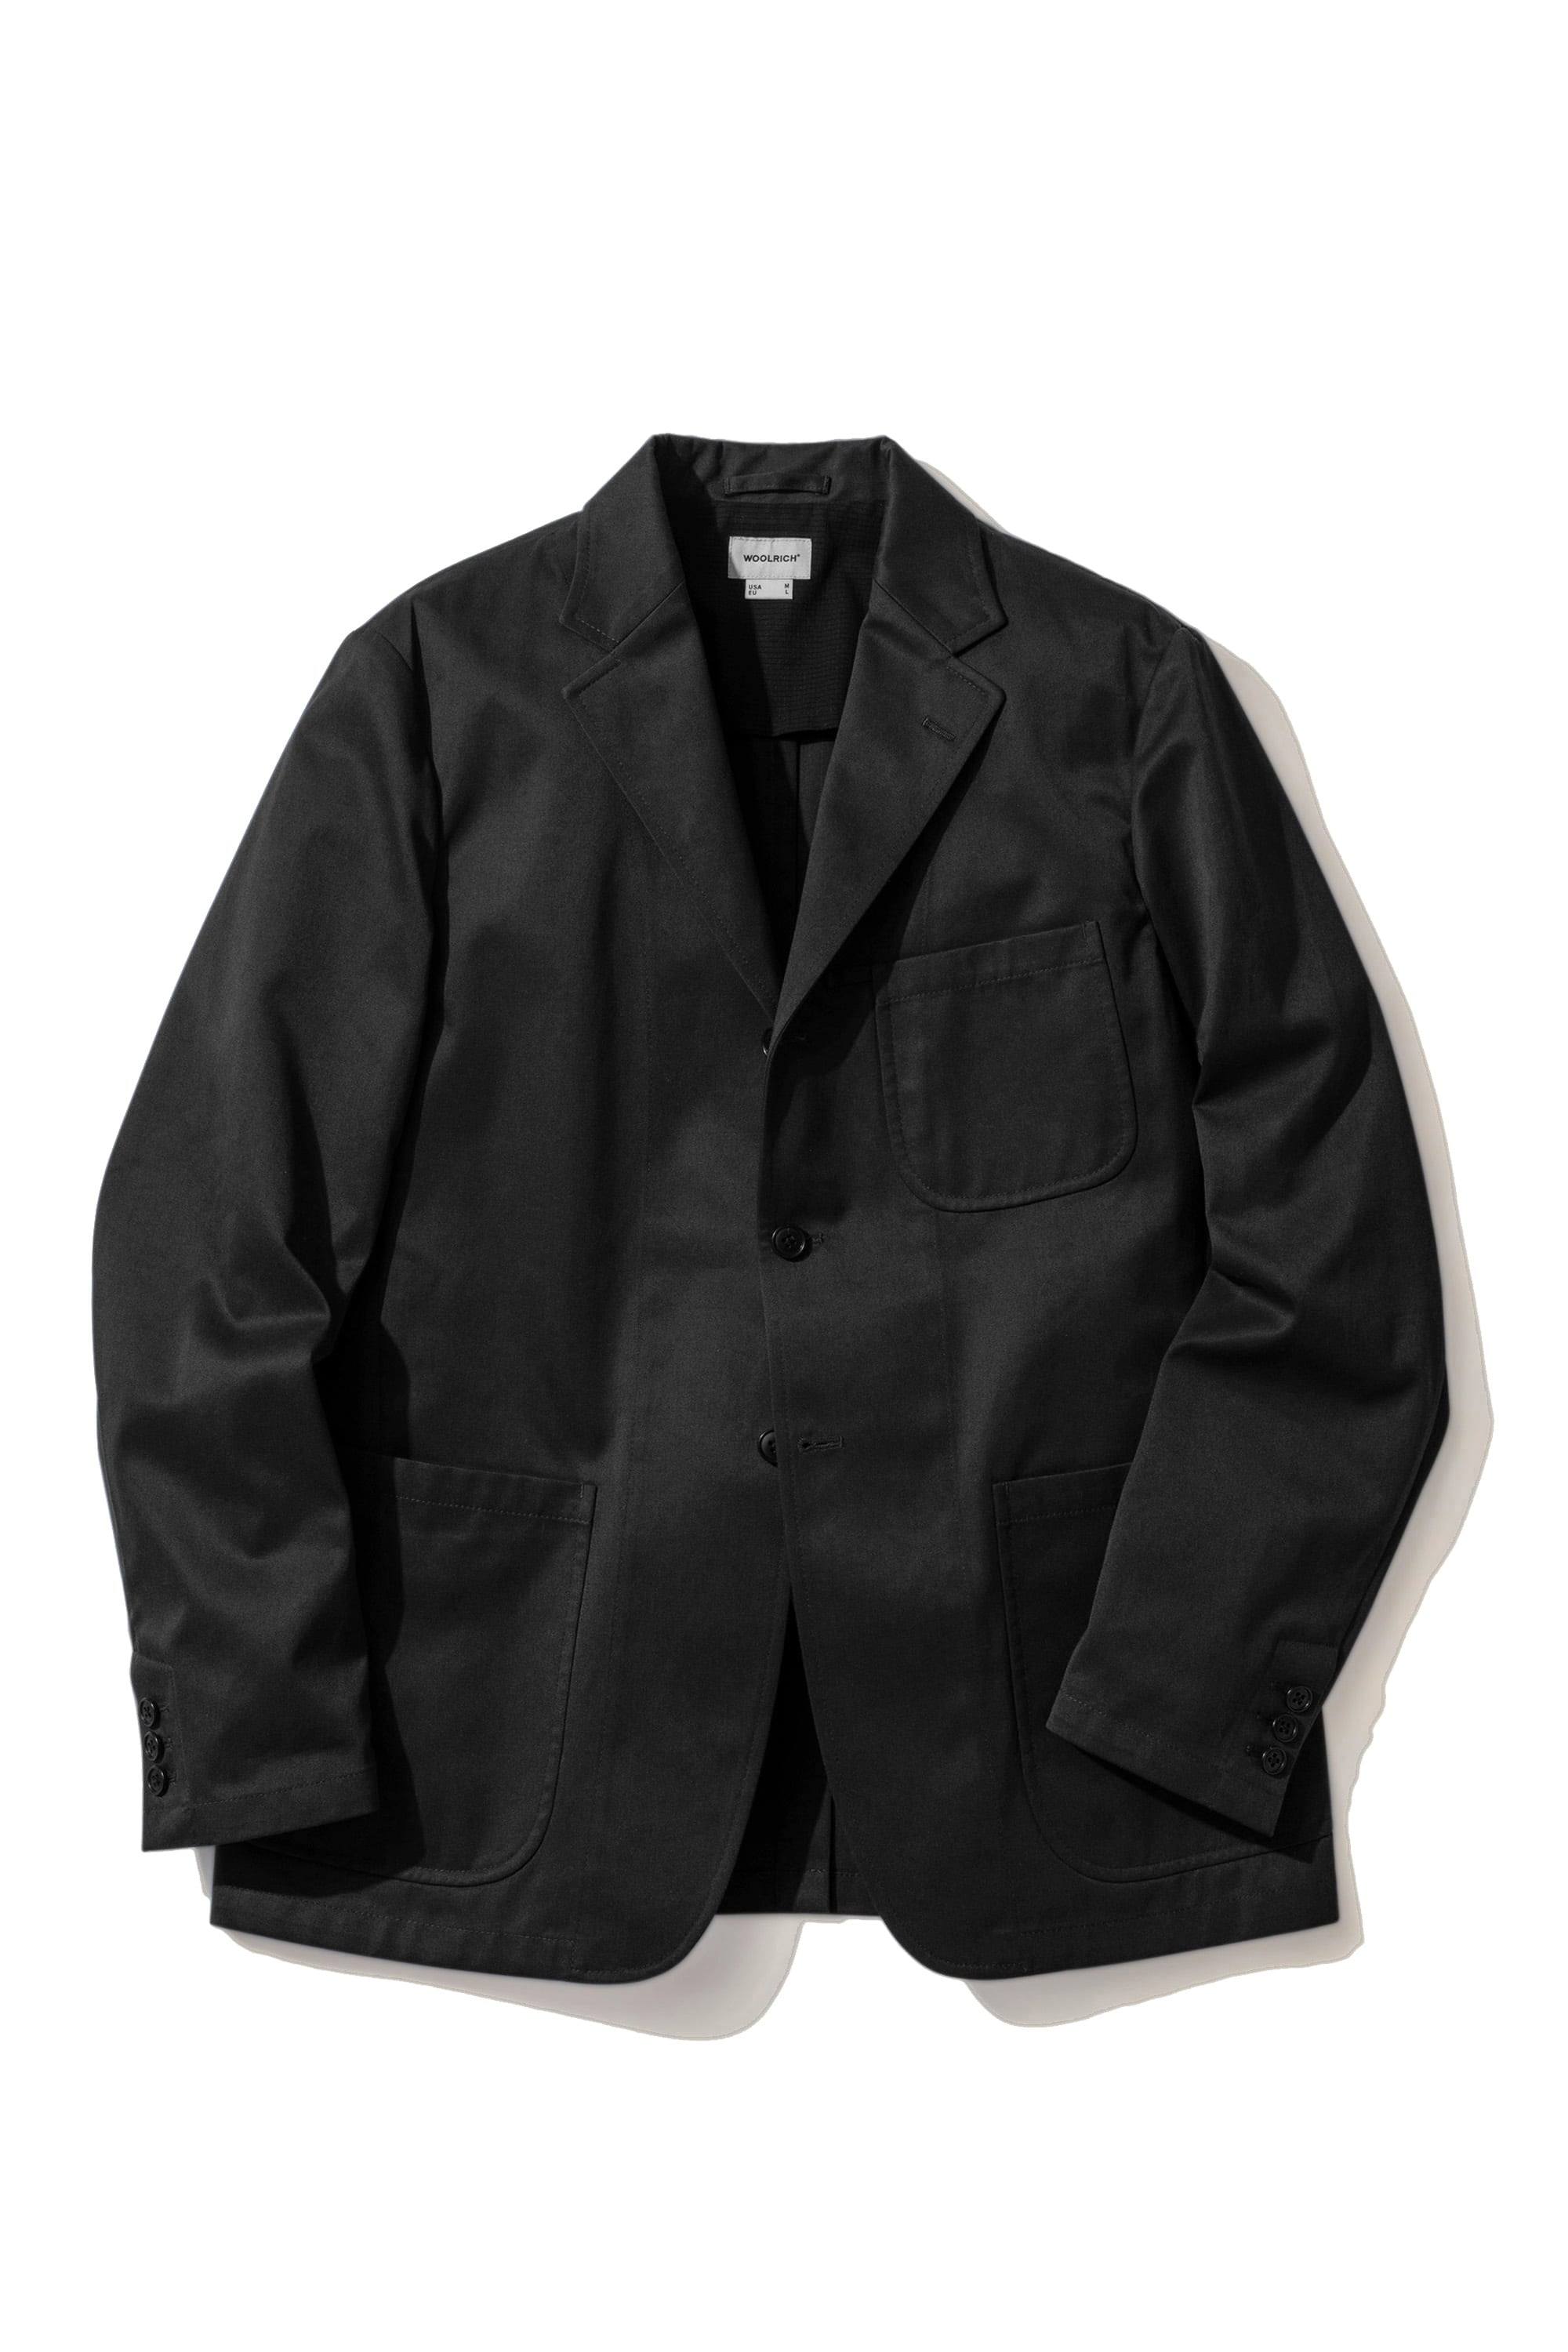 POLYESTER COTTON TWILL SETUP JACKET